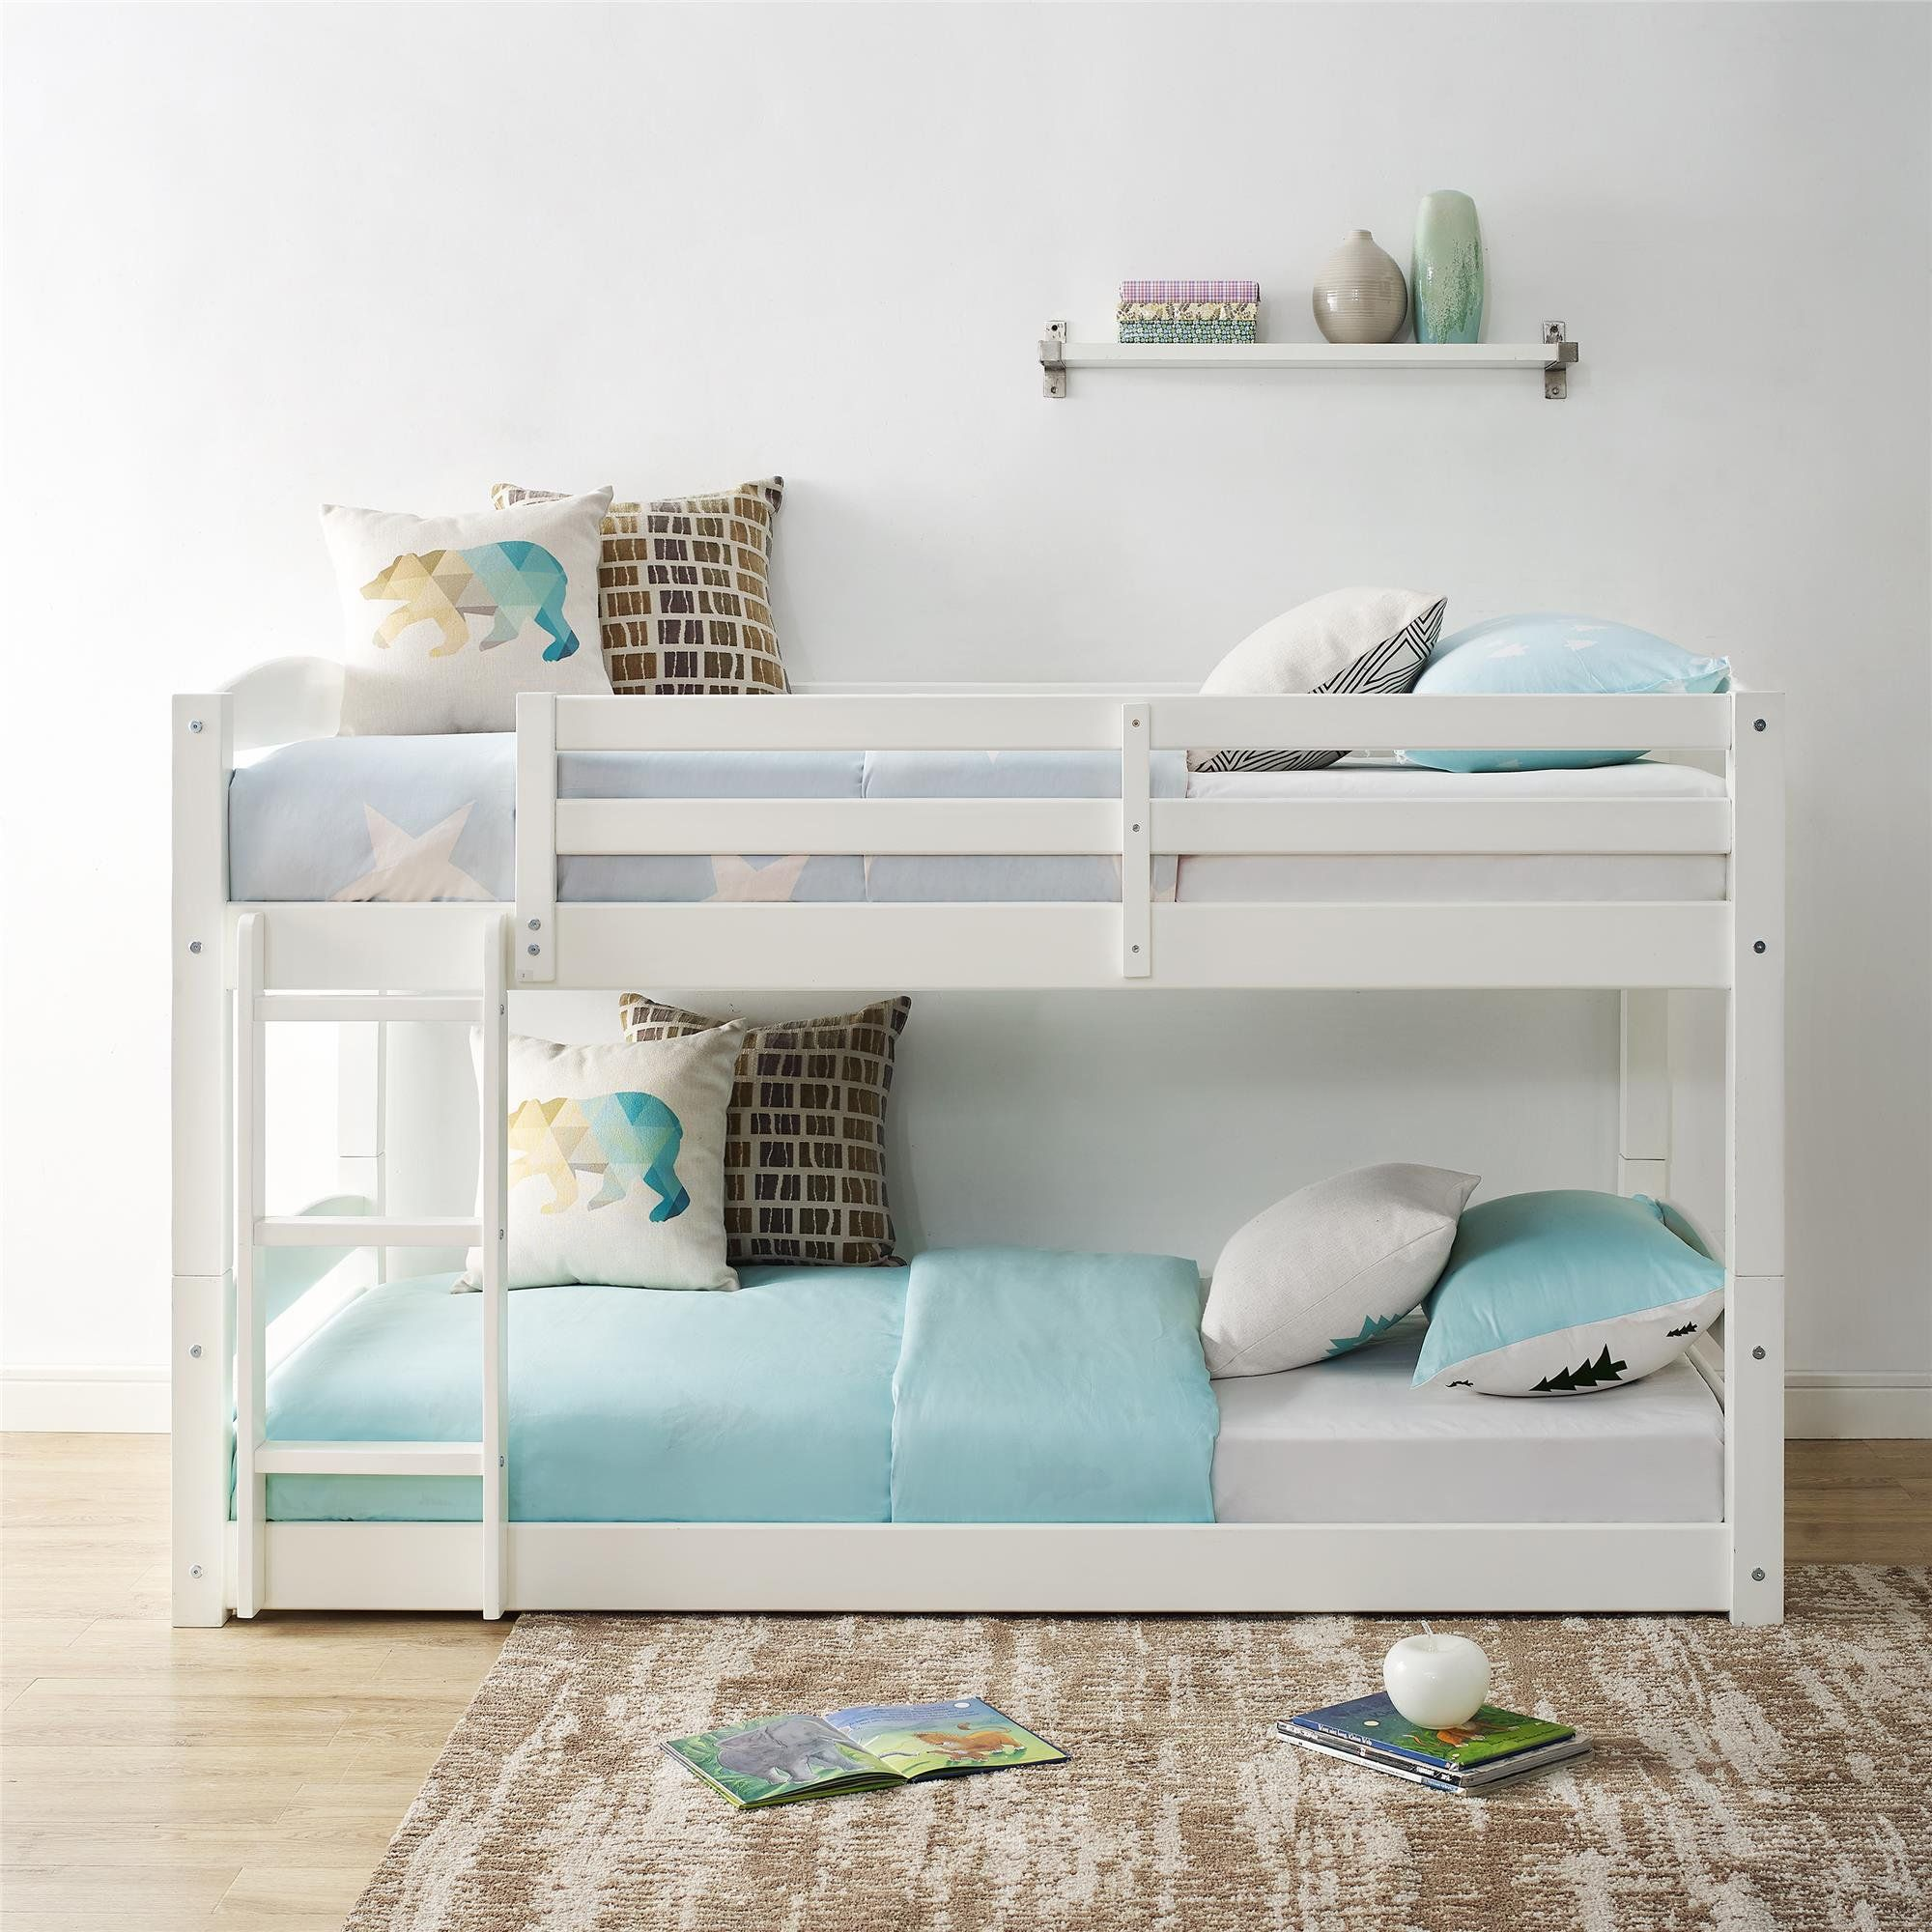 Better Homes And Gardens Tristan Twin Size Floor Bunk Bed Frame White Walmart Com In 2021 Twin Bunk Beds Kids Bunk Beds Bunk Bed Designs